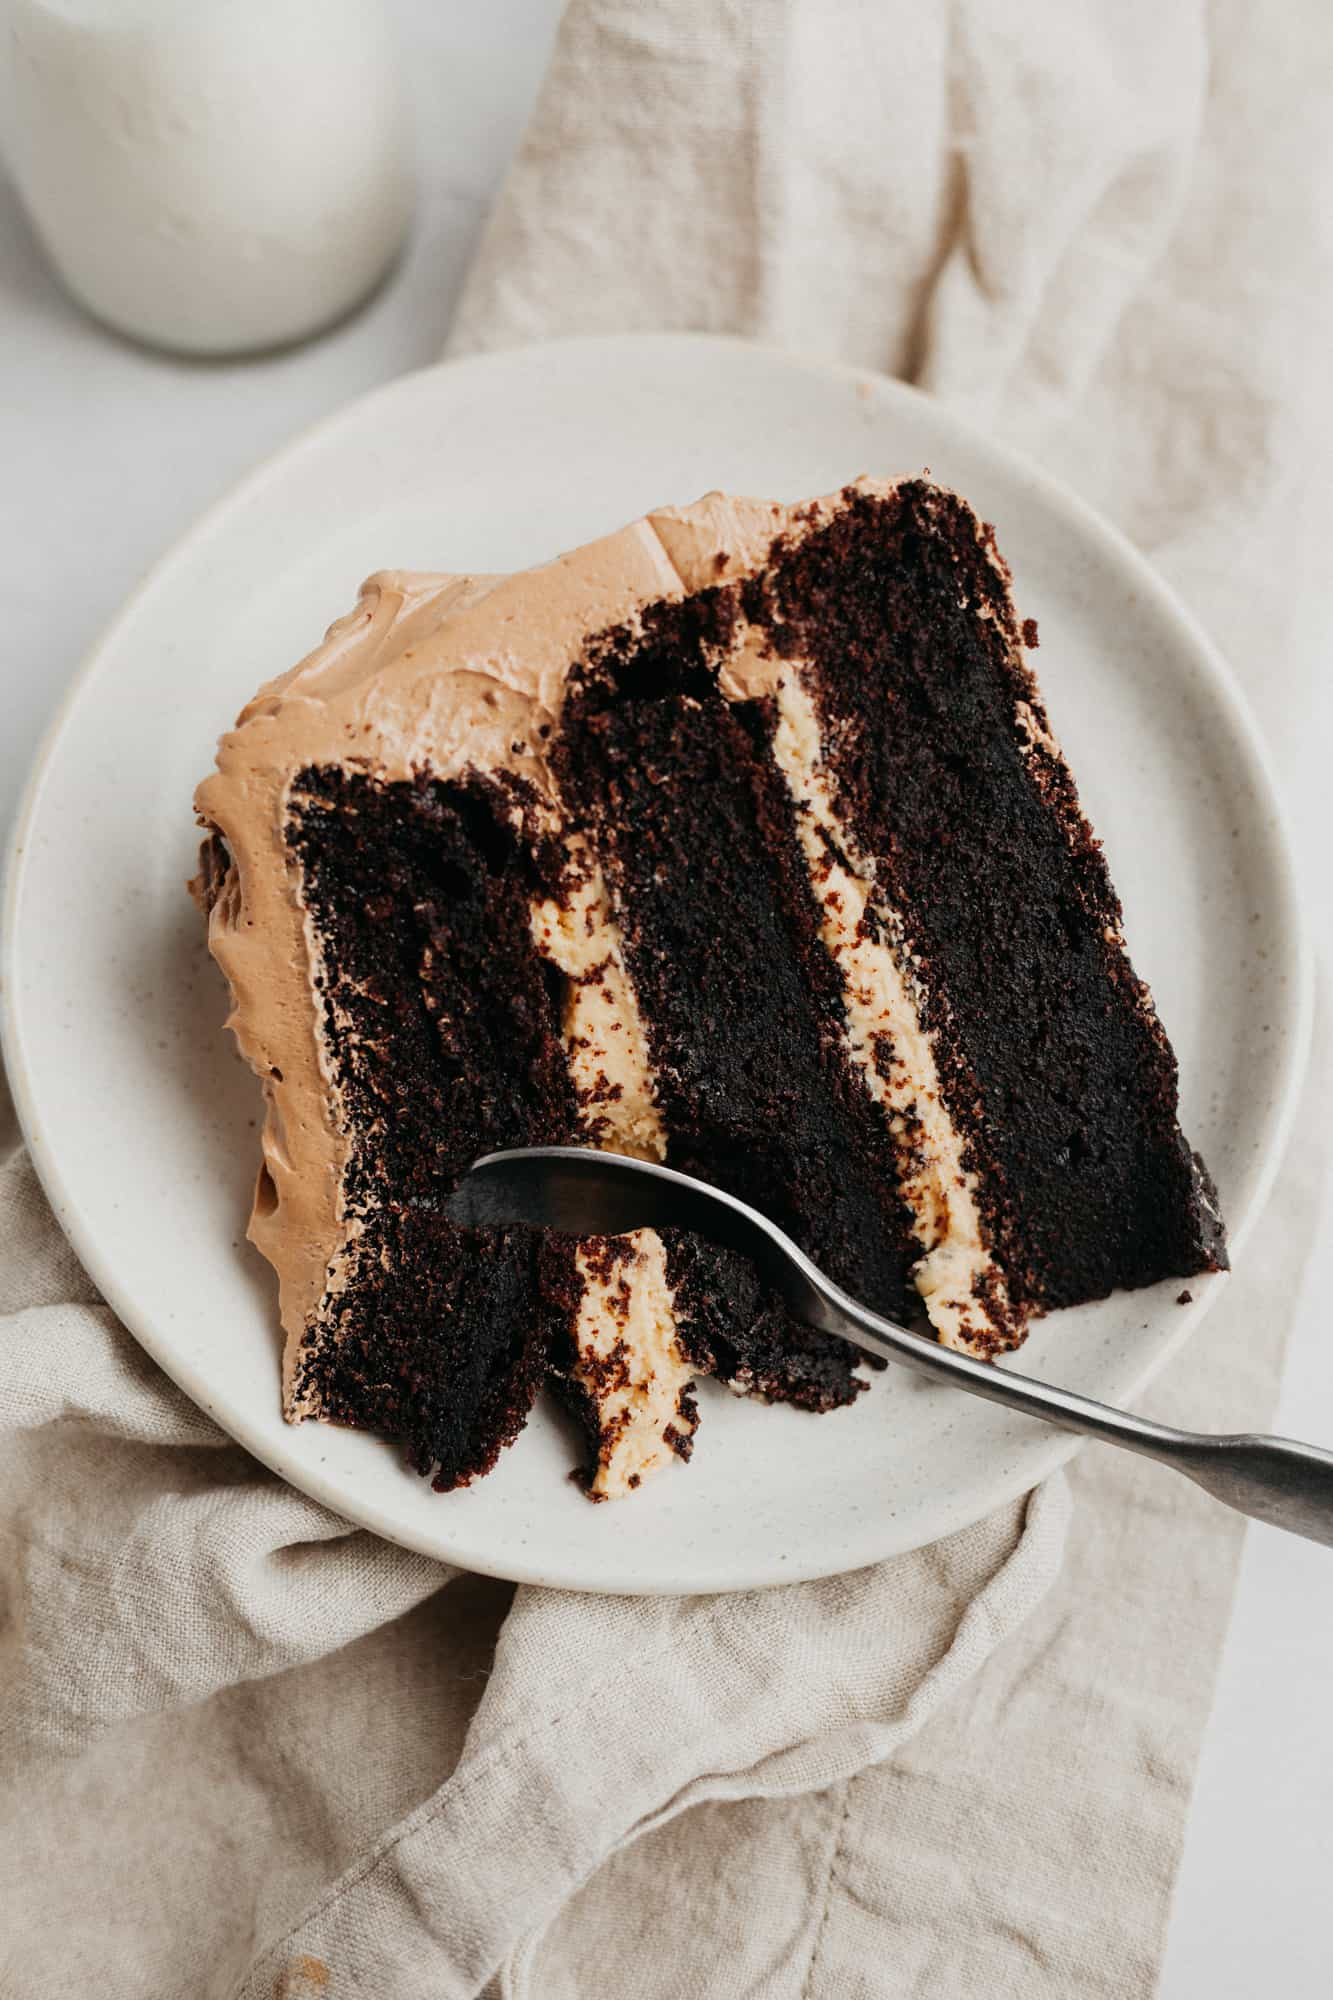 A slice of peanut butter and chocolate cake, made of three layers with a peanut butter filling, on a small beige plate.